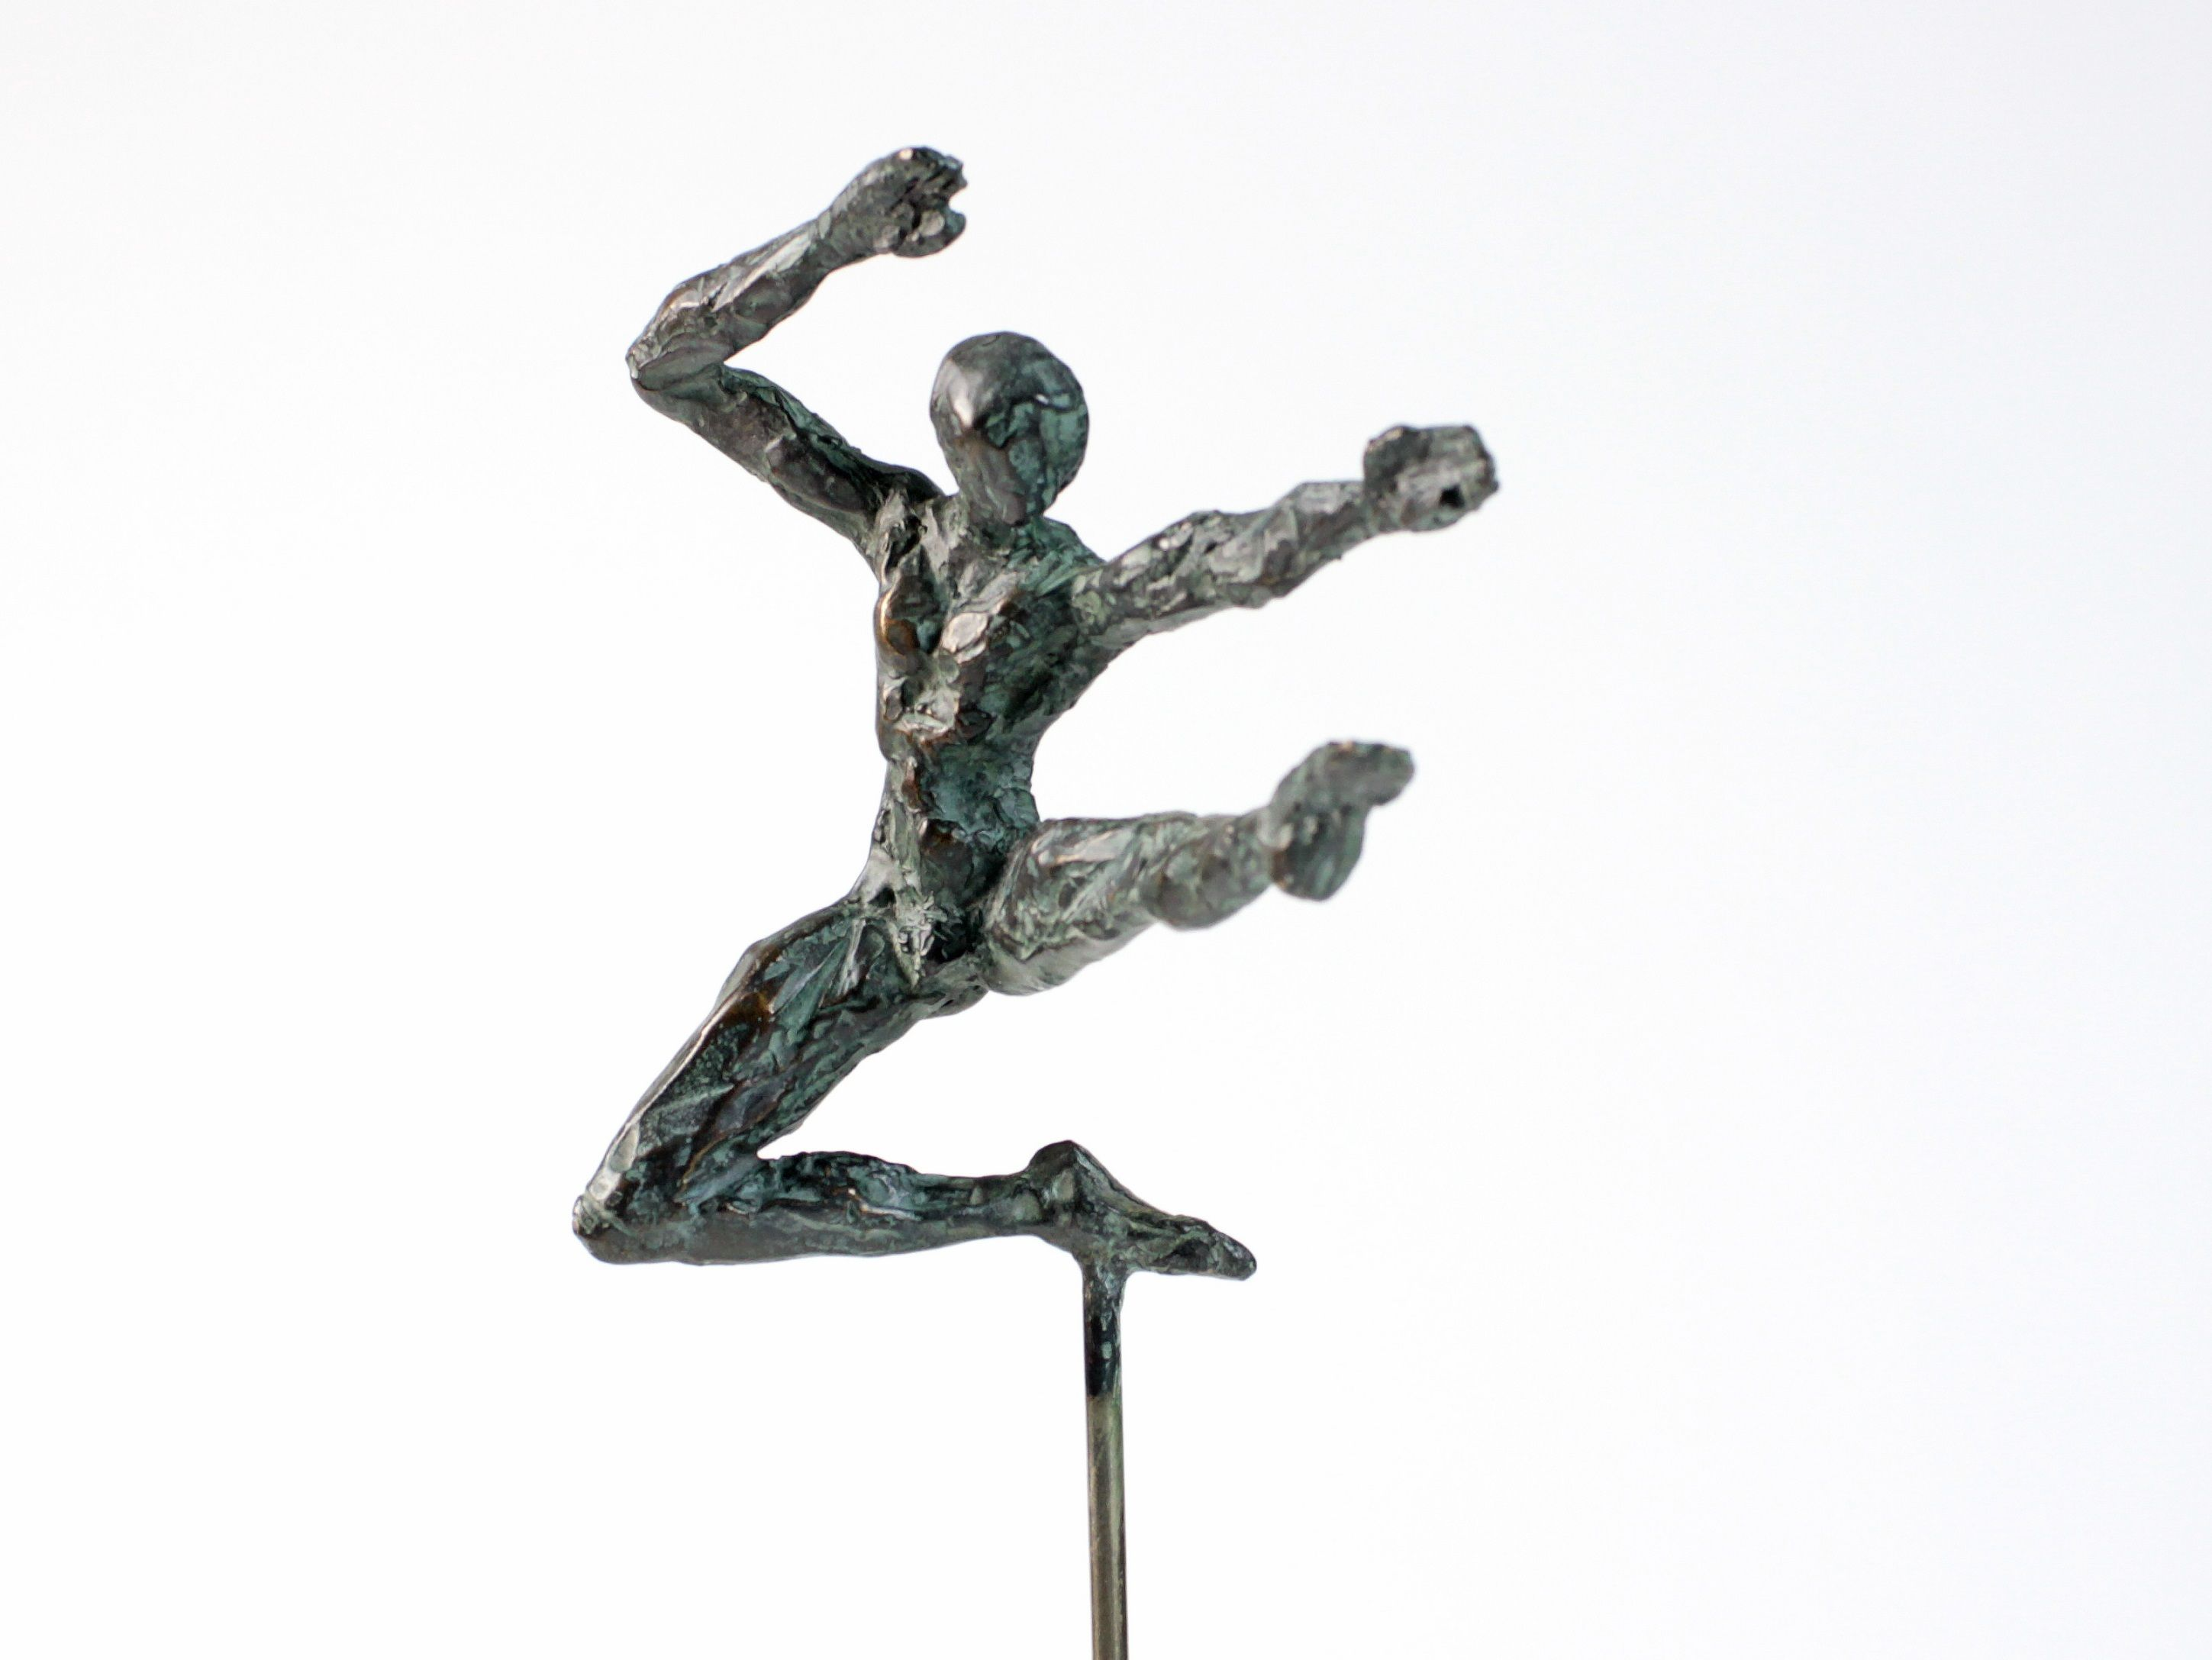 Petit Danseur Karateka II,Yann Guillon,Sculpture contemporaine, detail 3